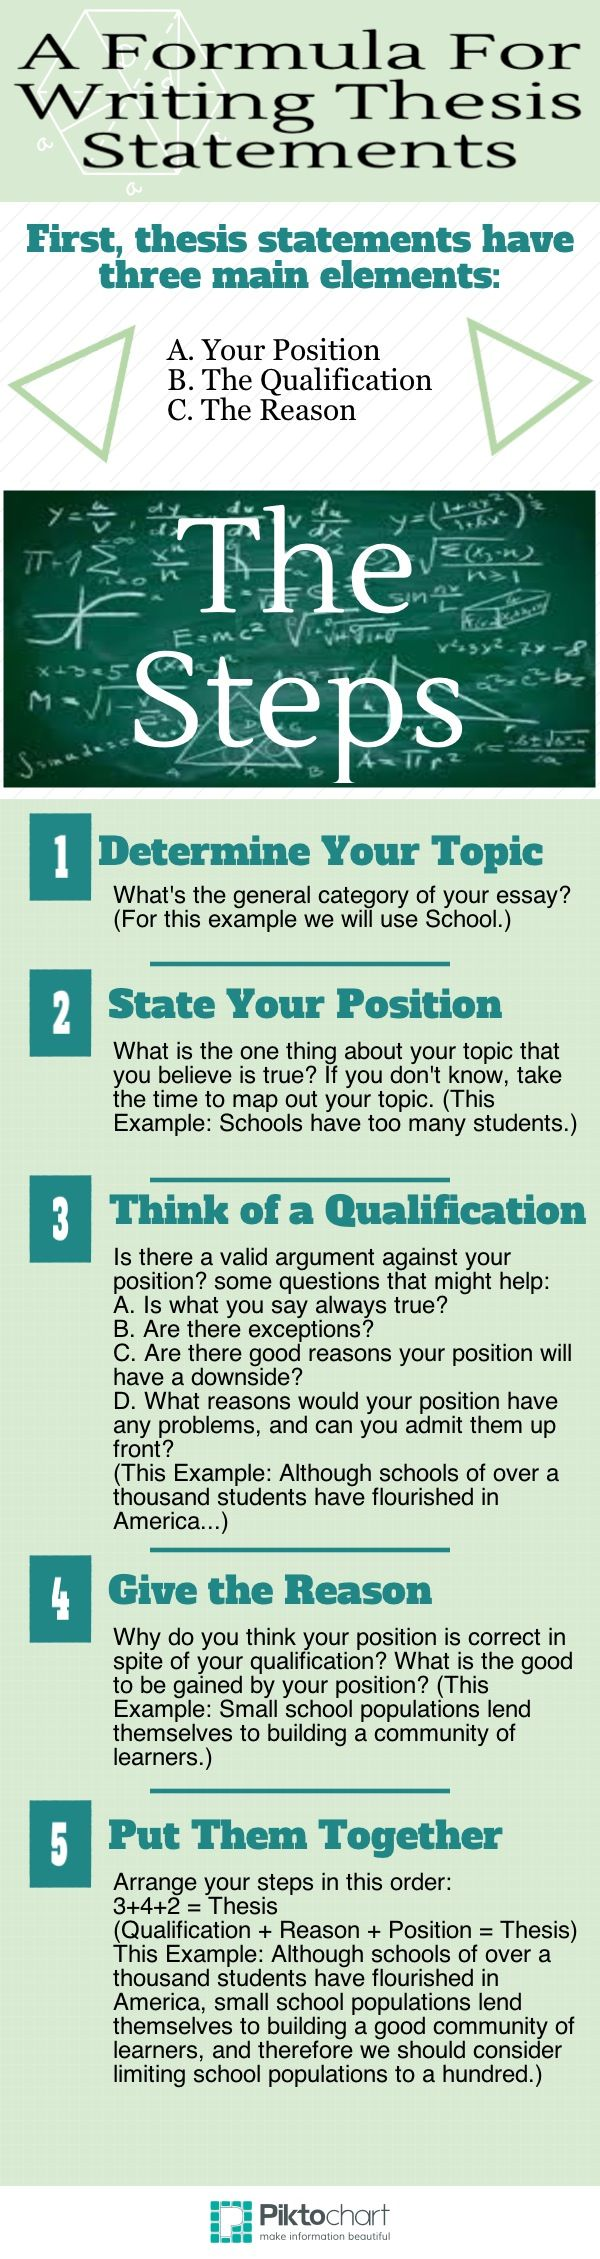 best ideas about thesis statement argumentative thesis statements piktochart infographic middot papers writingacademic writingessay